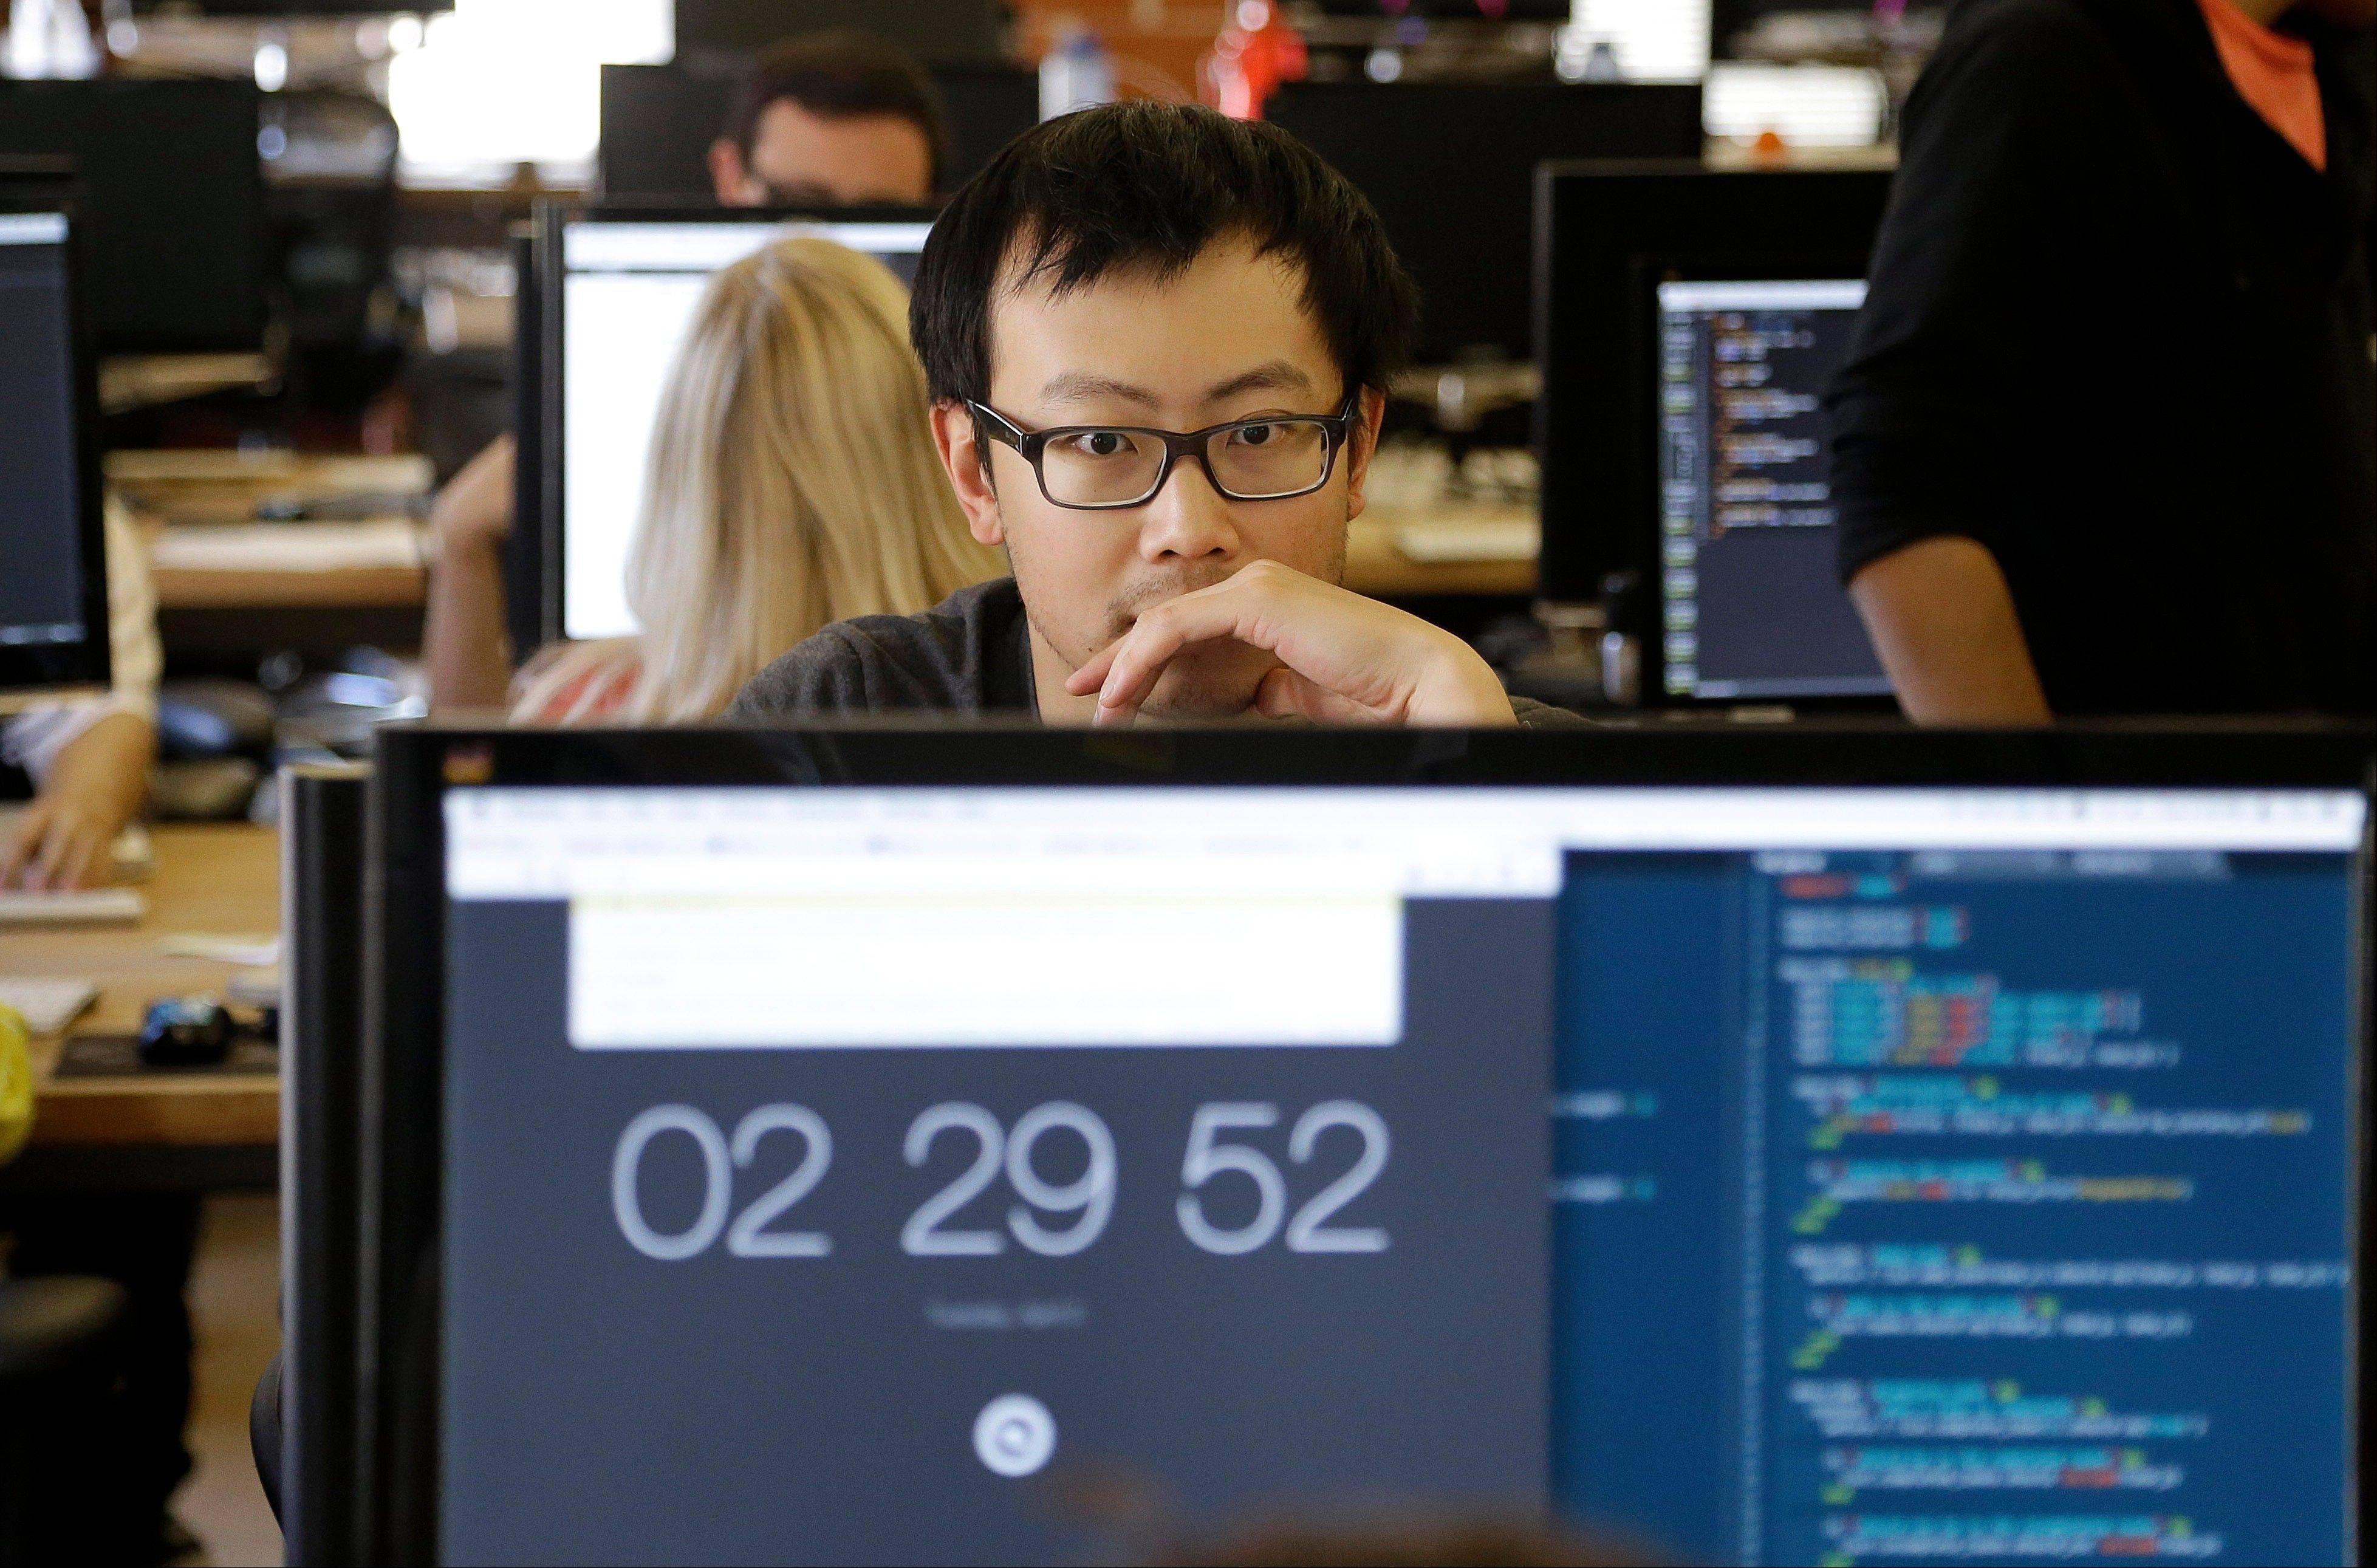 Student David Wen works during a class at Dev Bootcamp in San Francisco.